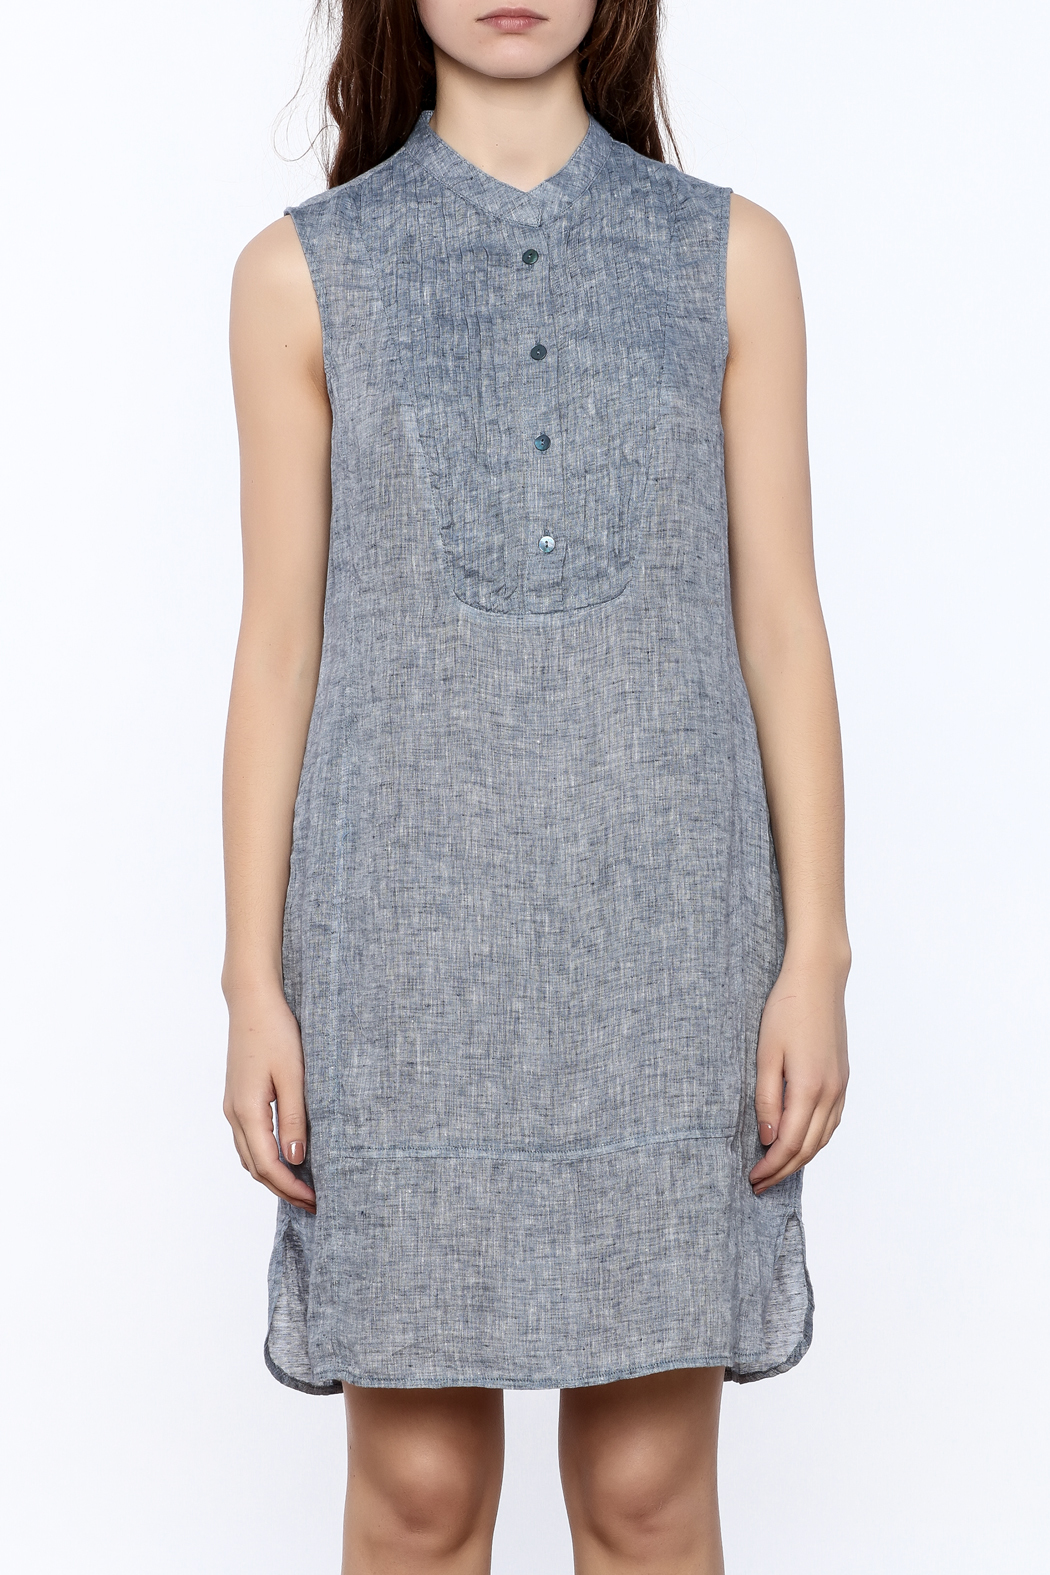 Nic + Zoe Sleeveless Linen Dress - Side Cropped Image